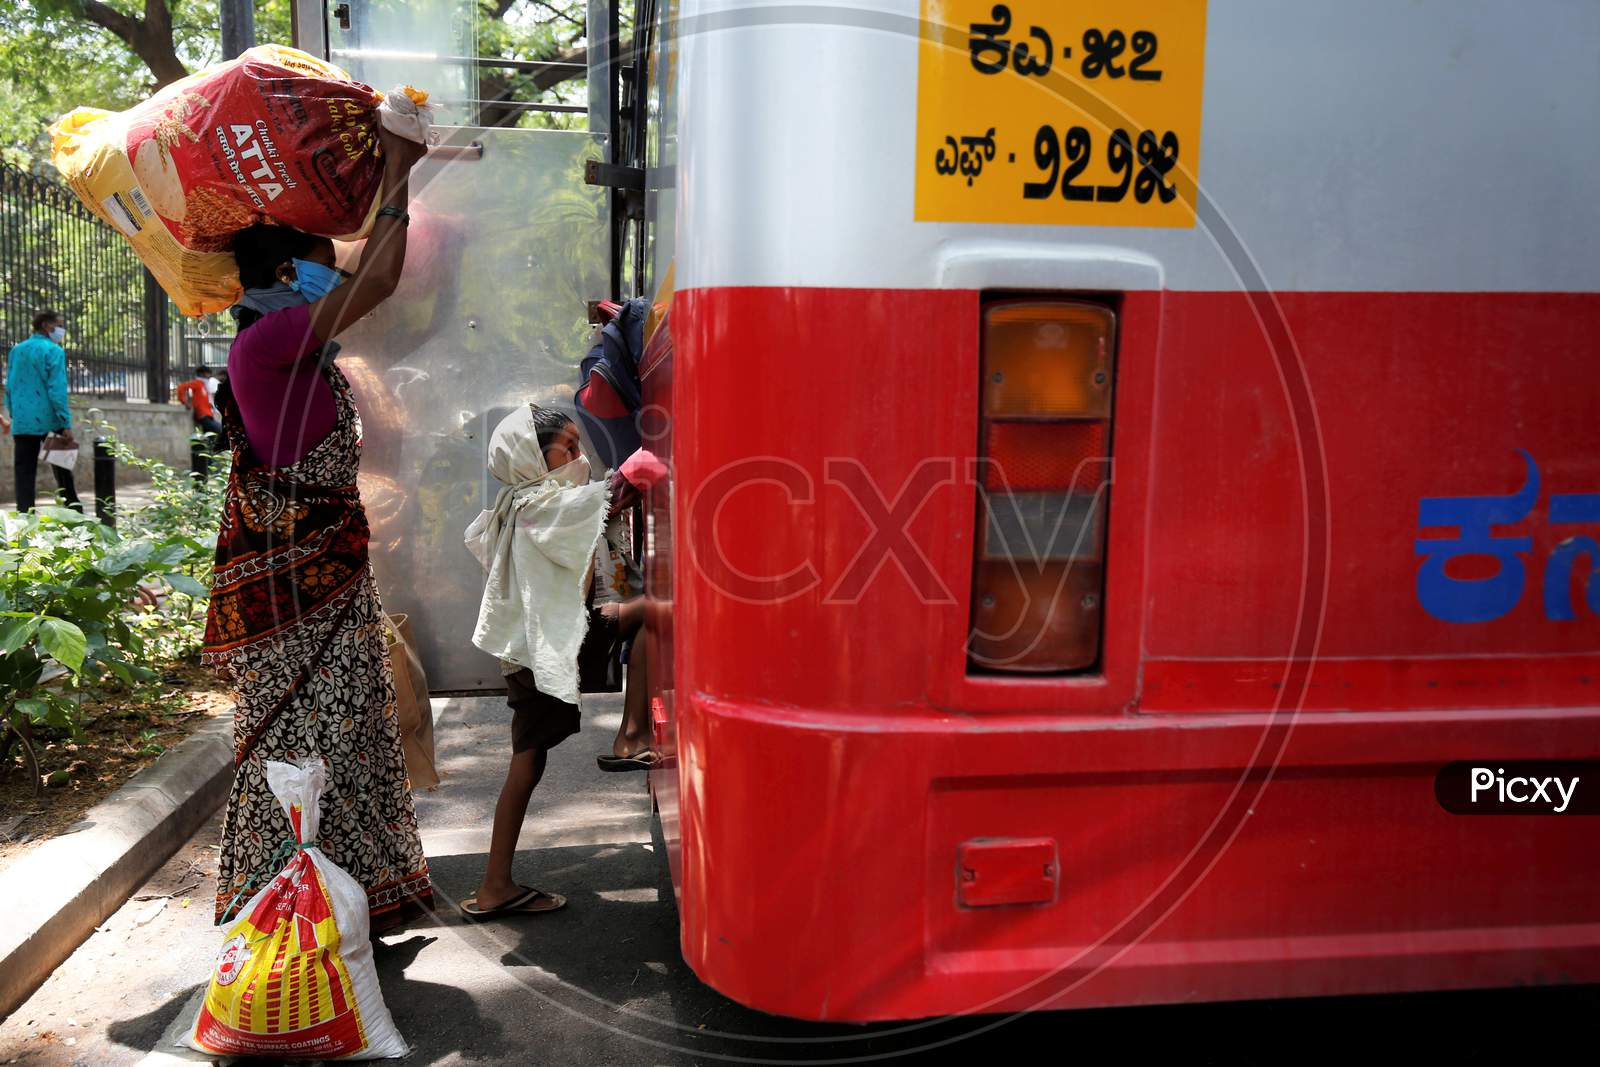 The child of migrant workers climbs into a bus prior to being repatriated to his village by the government during a nationwide lockdown to prevent the spread of coronavirus (COVID-19) in Bangalore, India, April 30, 2020.